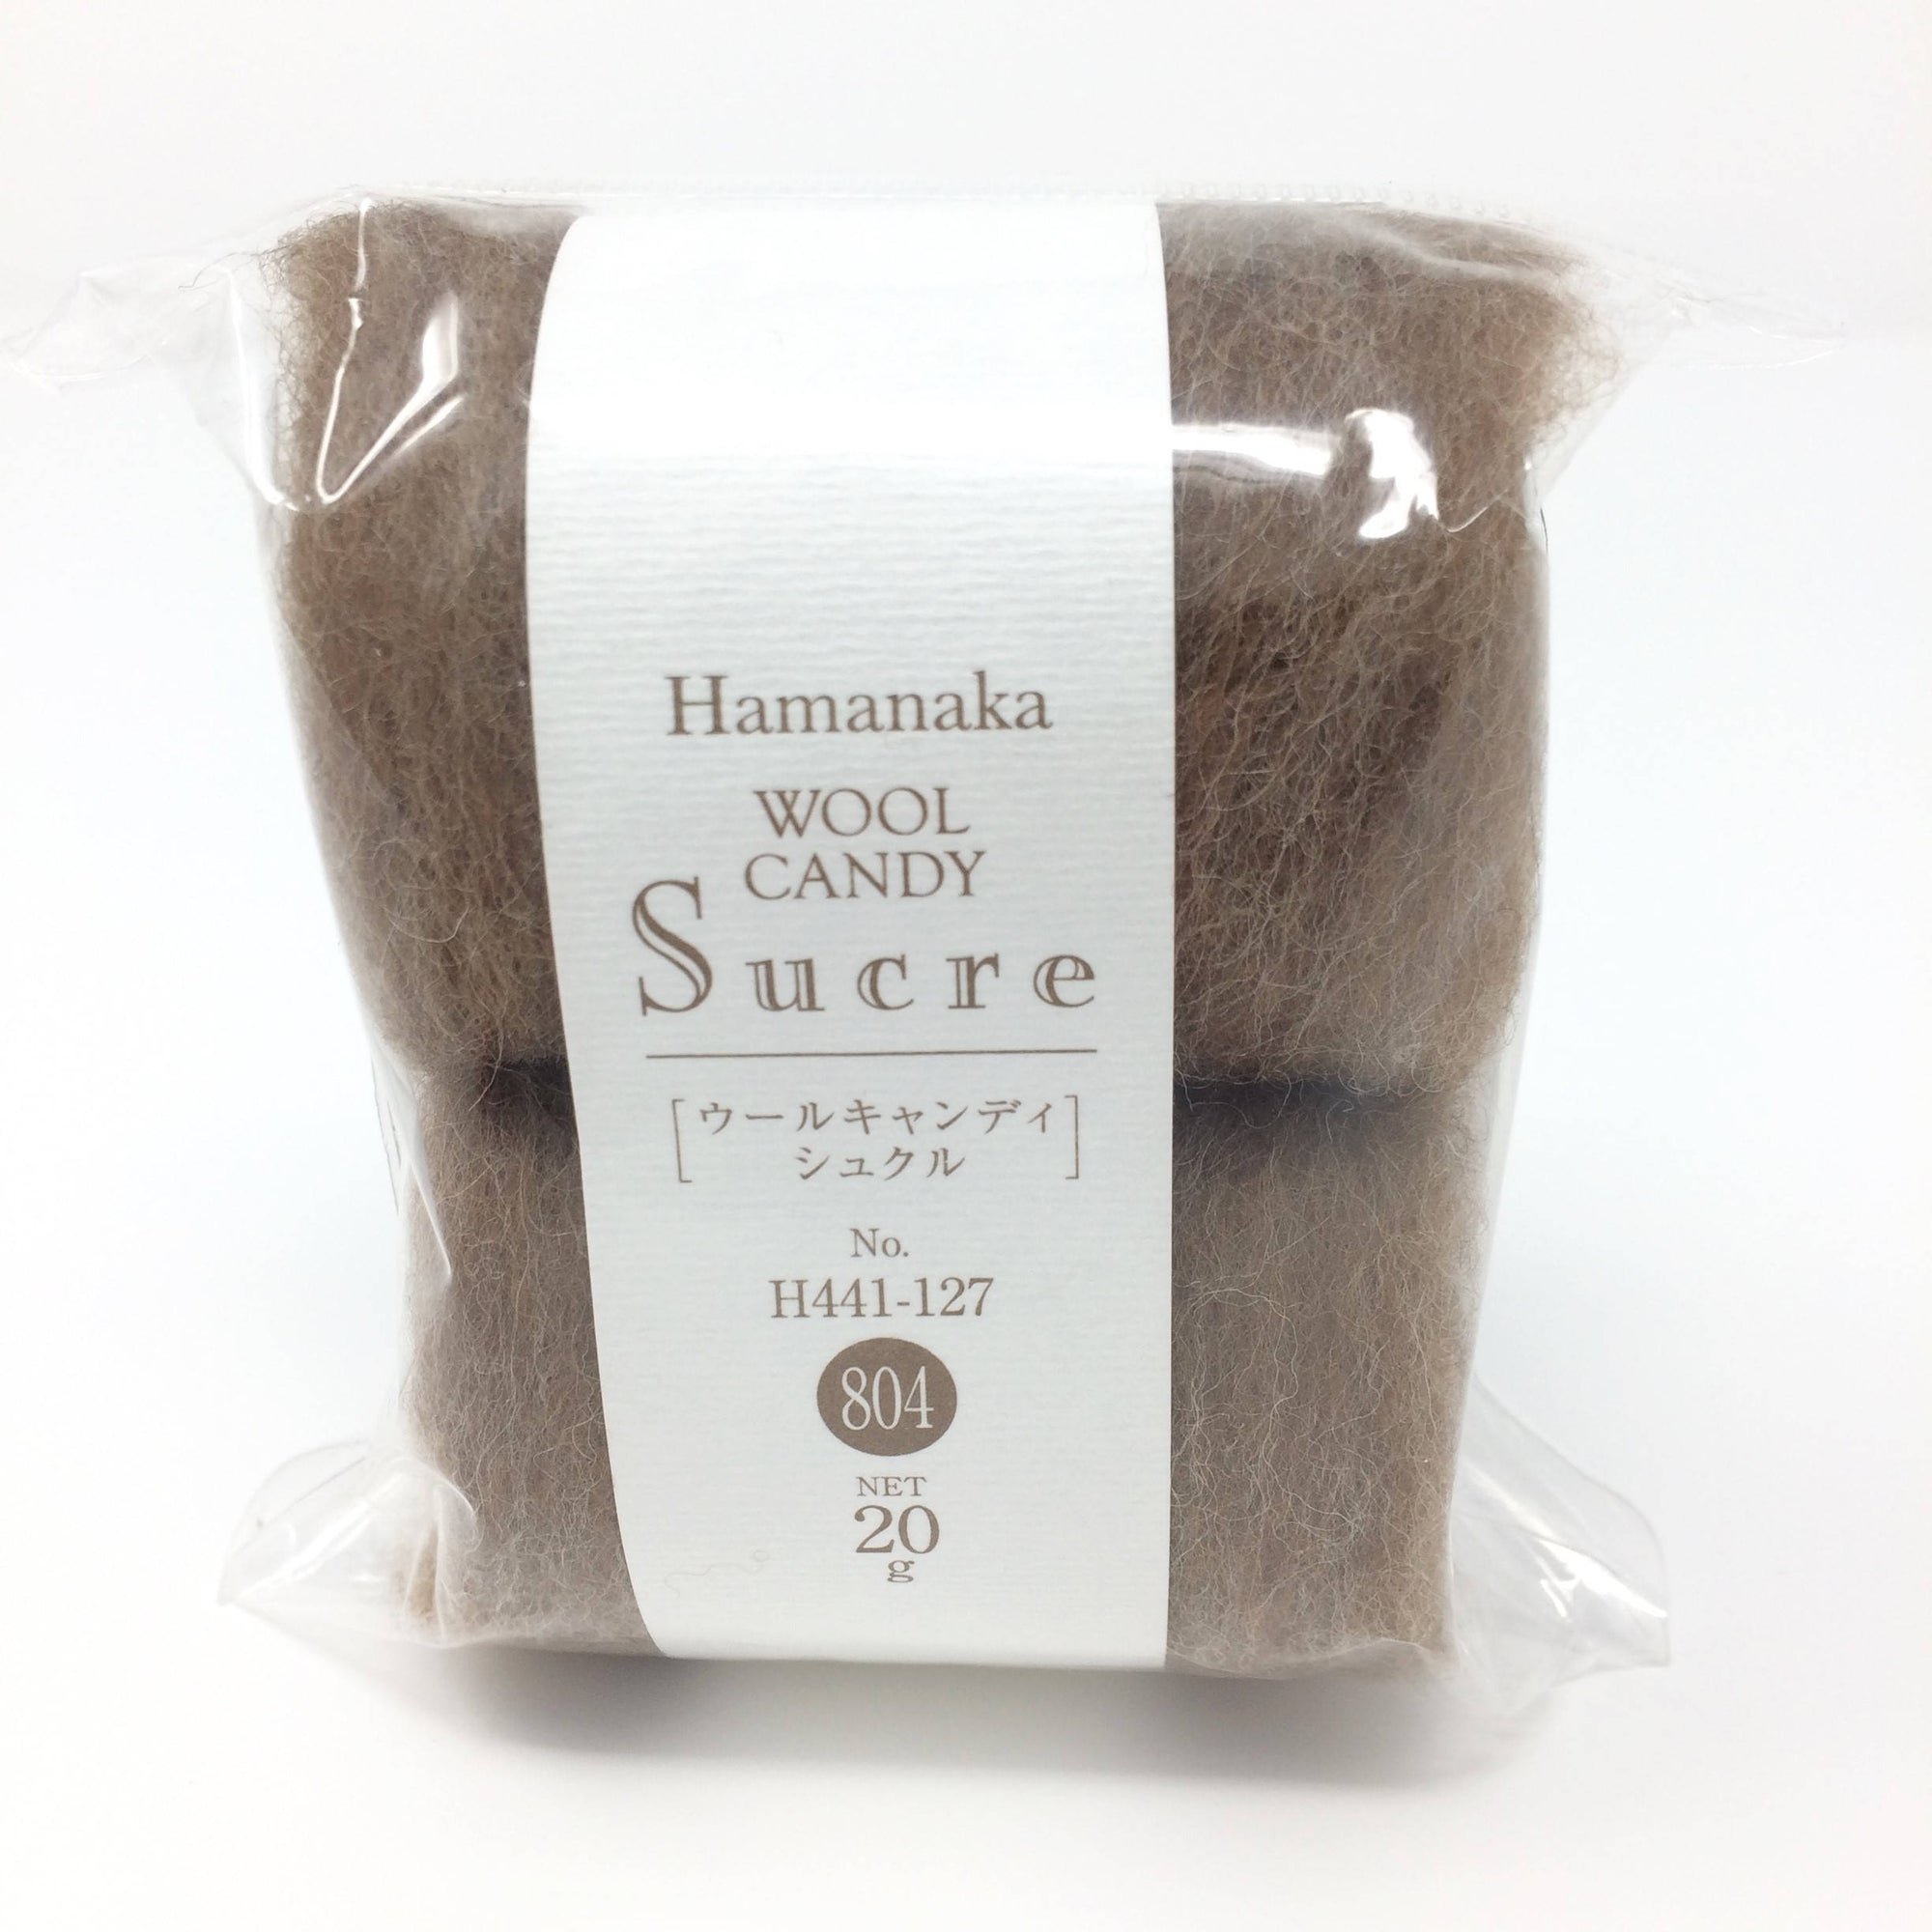 Hamanaka Wool Candy Sucre - Natural Dark Brown 20g